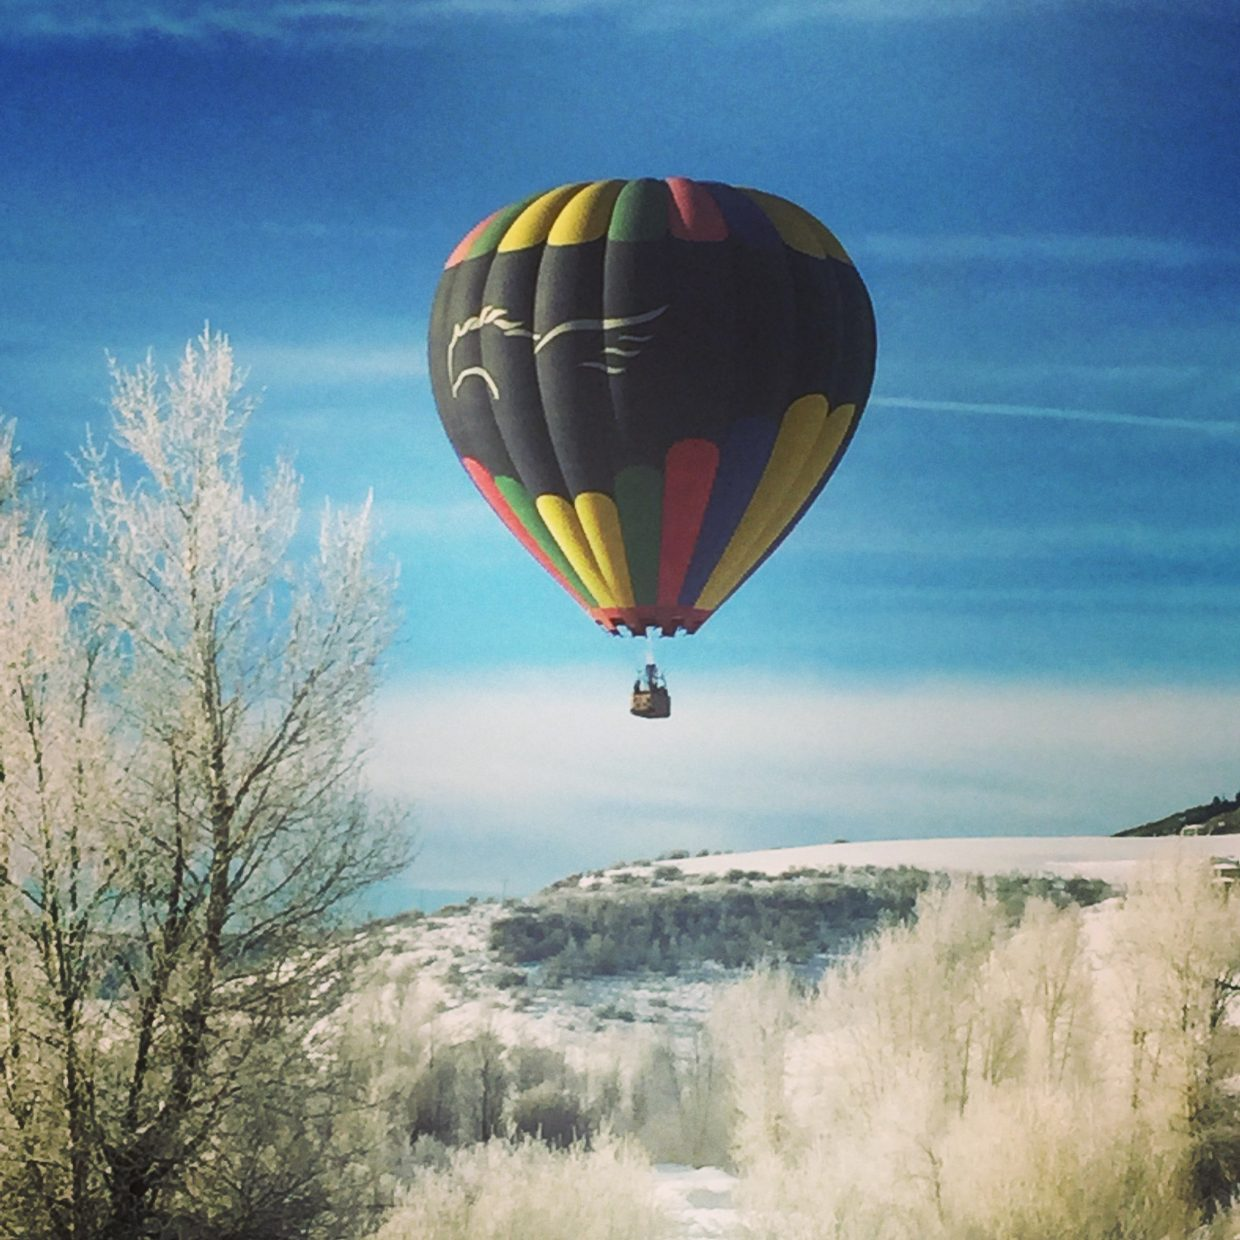 Hot air balloon in my back yard. Submitted by: Jessica Scroble.